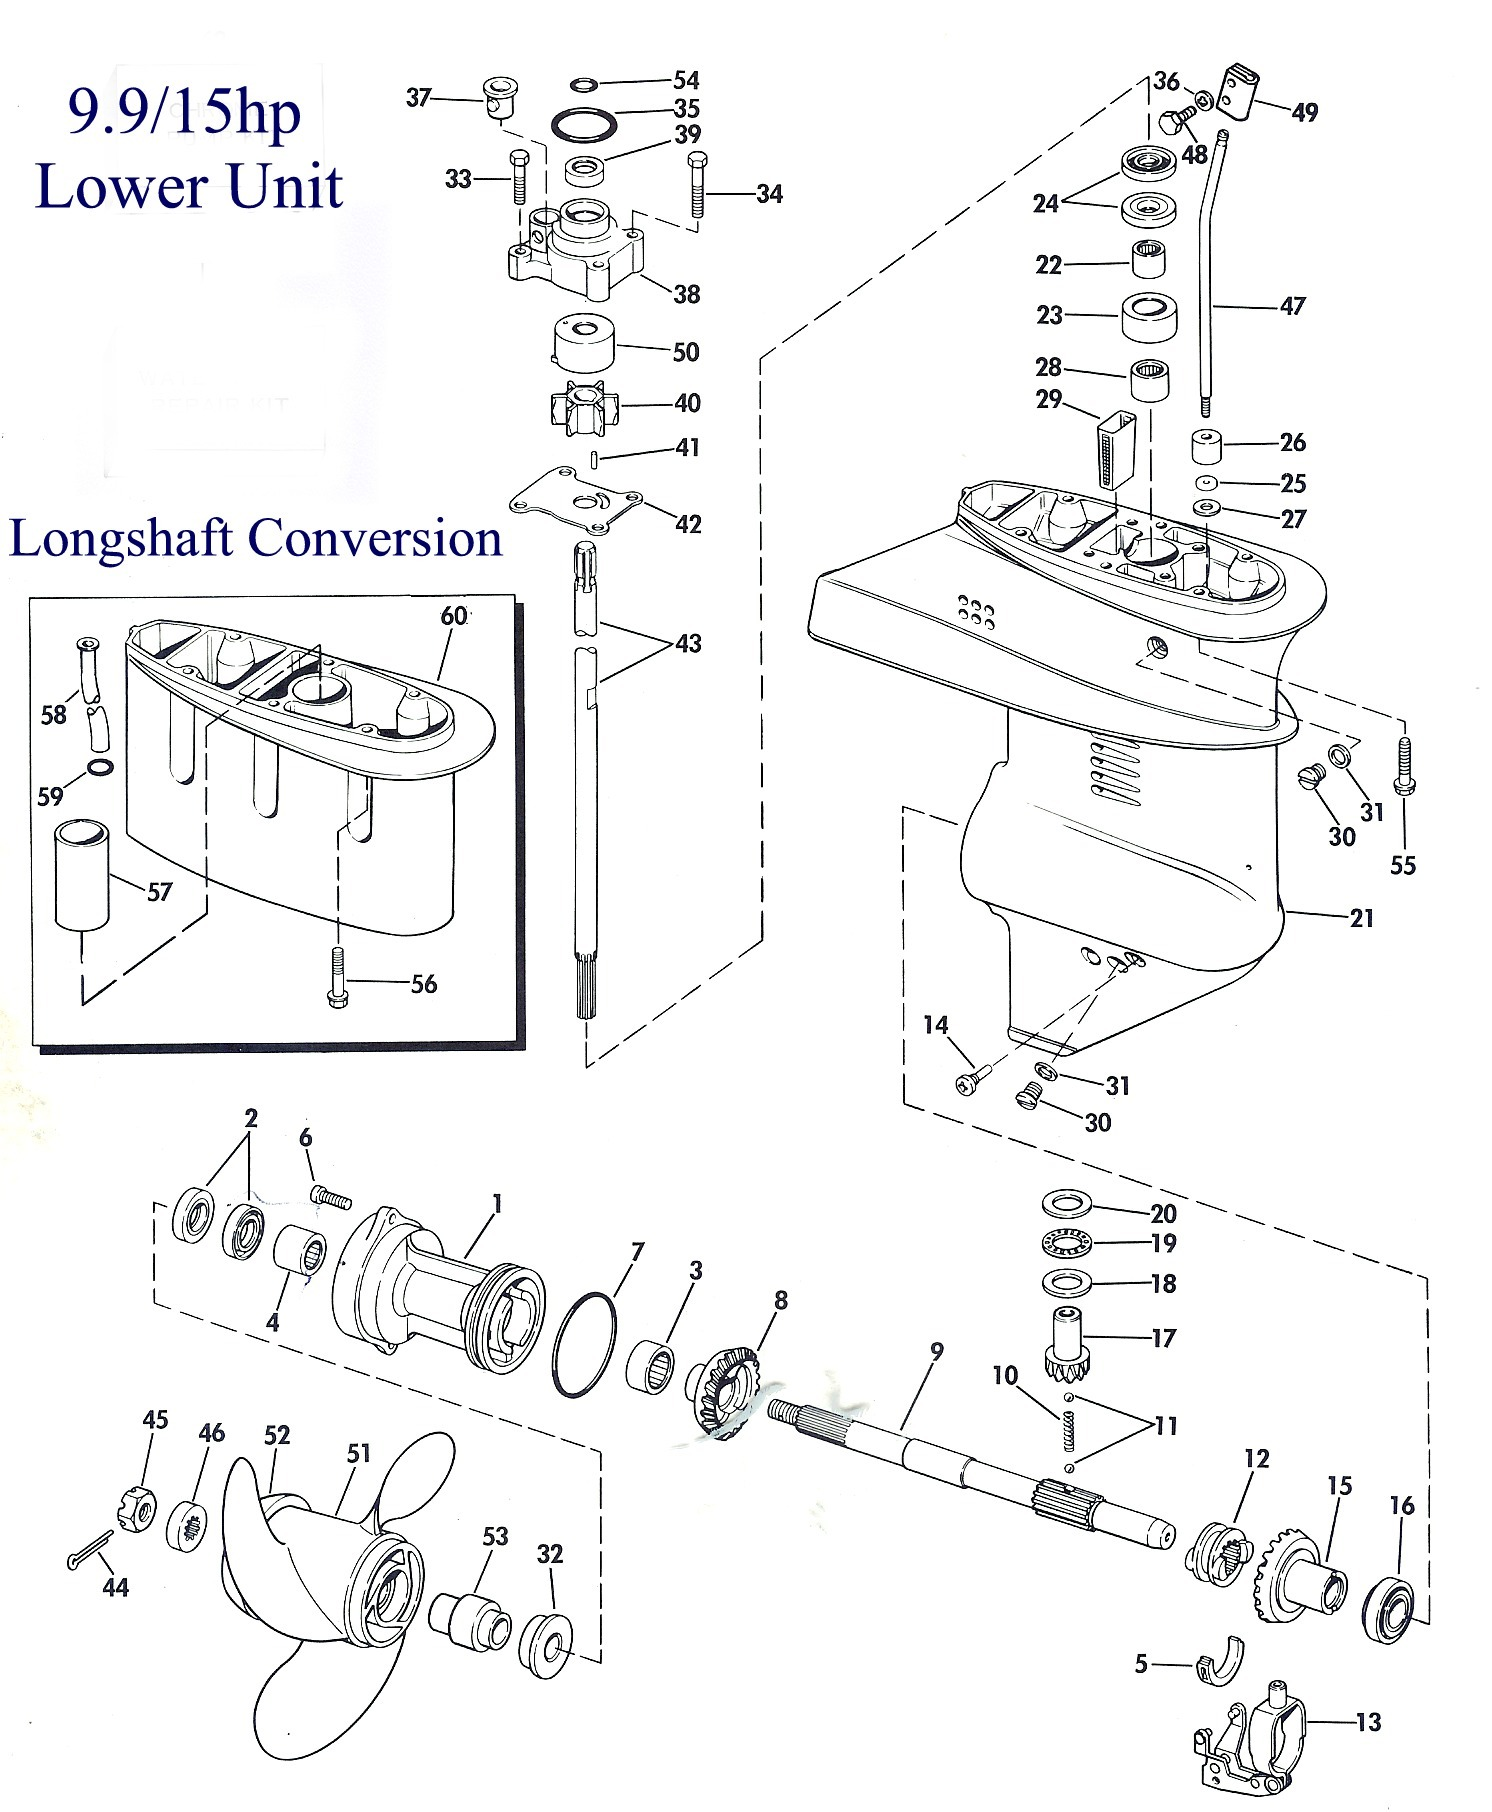 Evinrude Outboard Motor Lower Unit Diagram